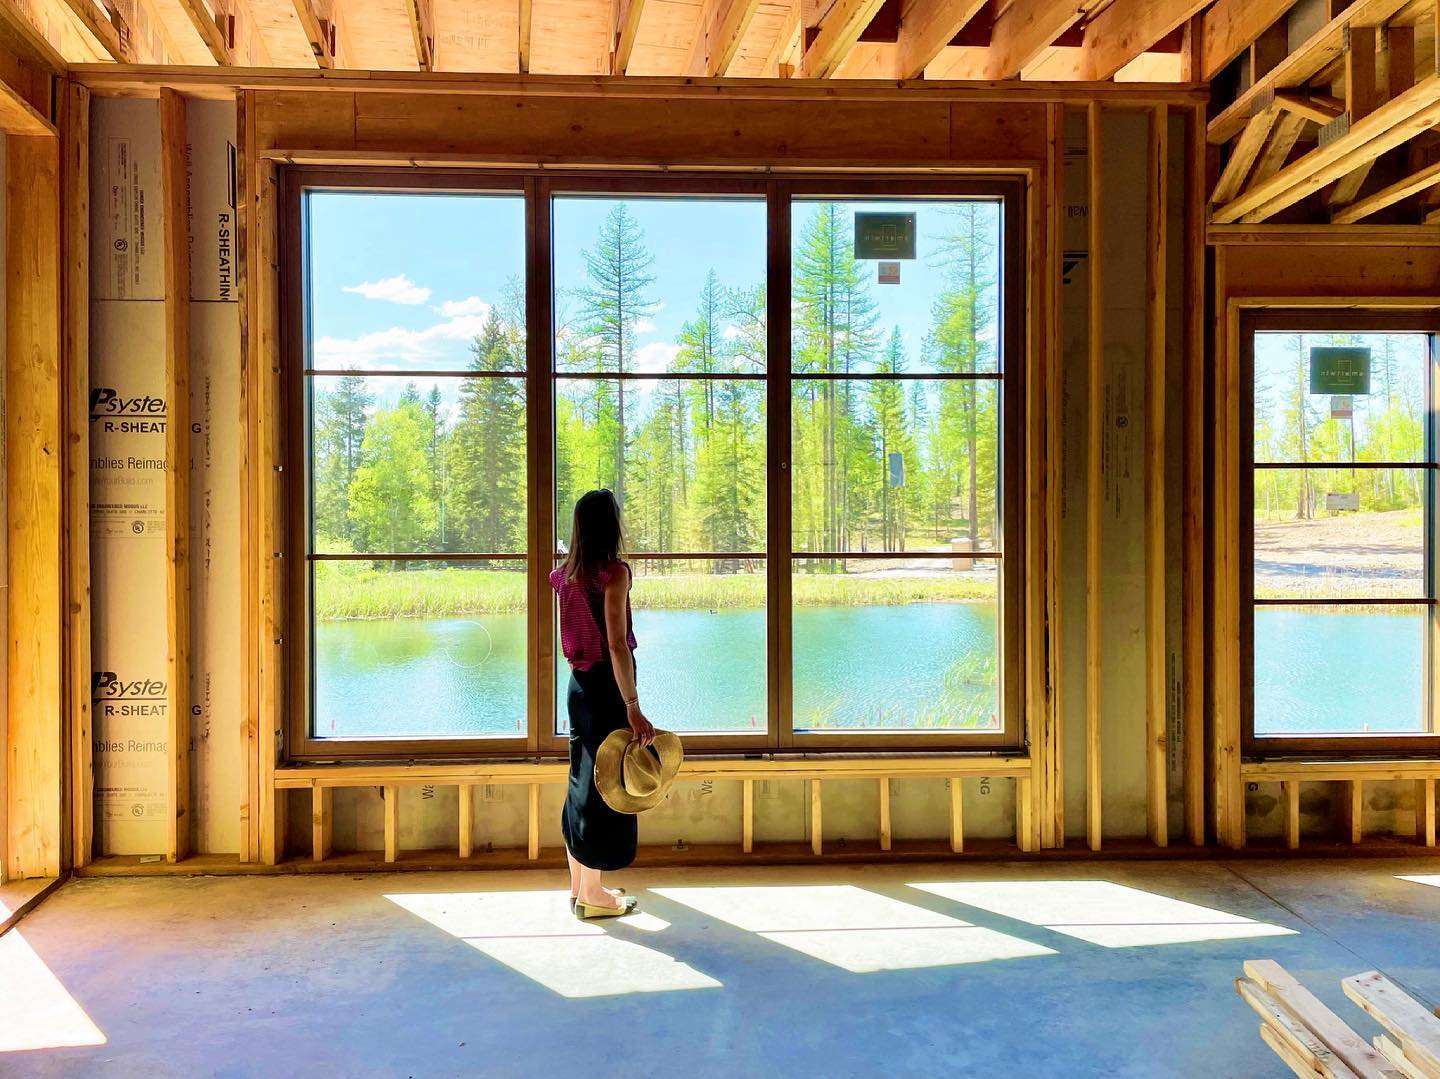 Windows to scale  (I'm roughly 5 feet) so they seem big enough! whitefish custom home builder